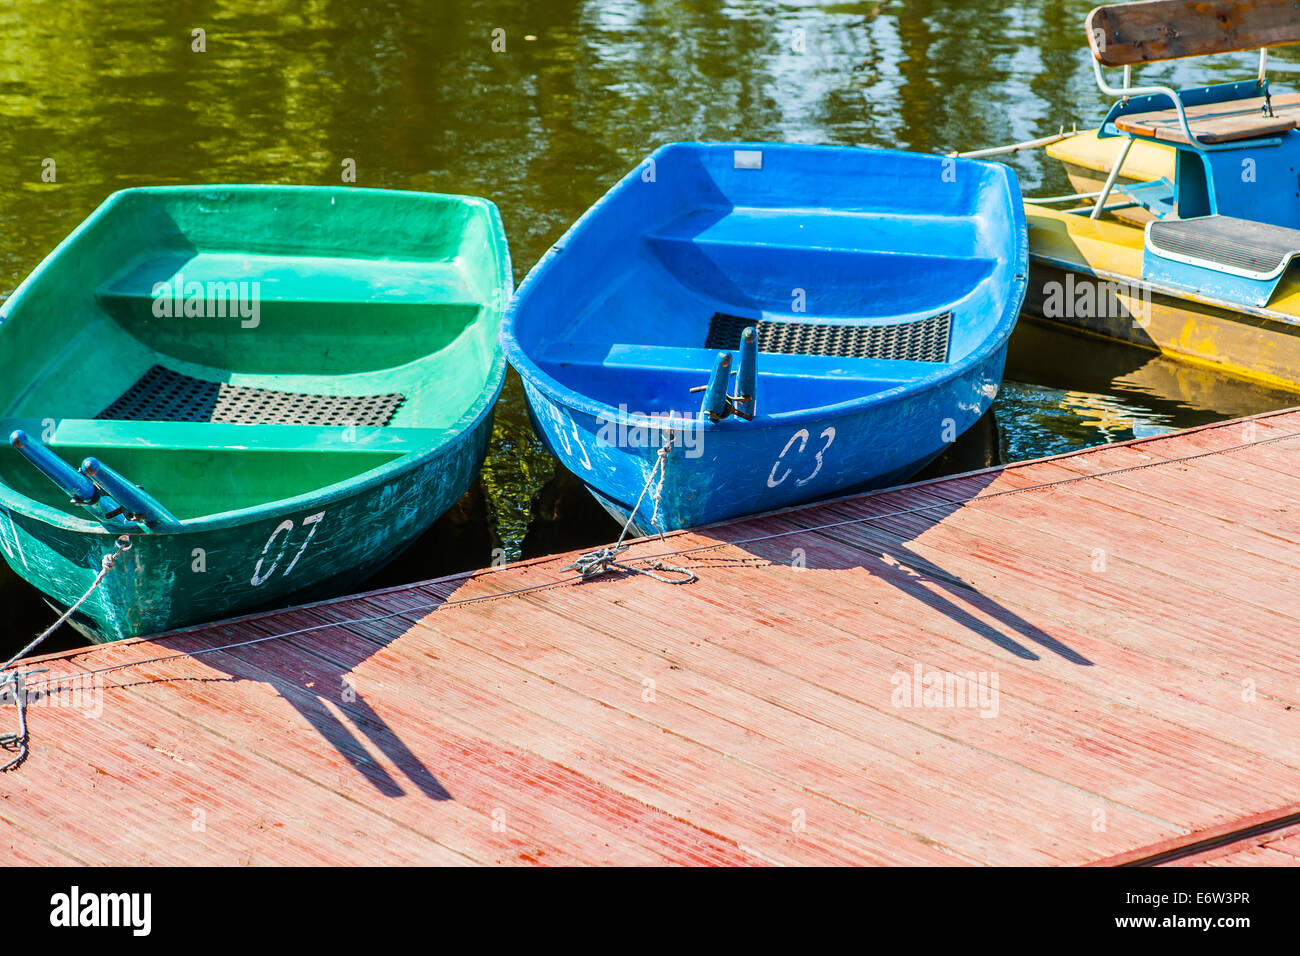 Oar boats and pedal boat for hire wait for clients - Stock Image